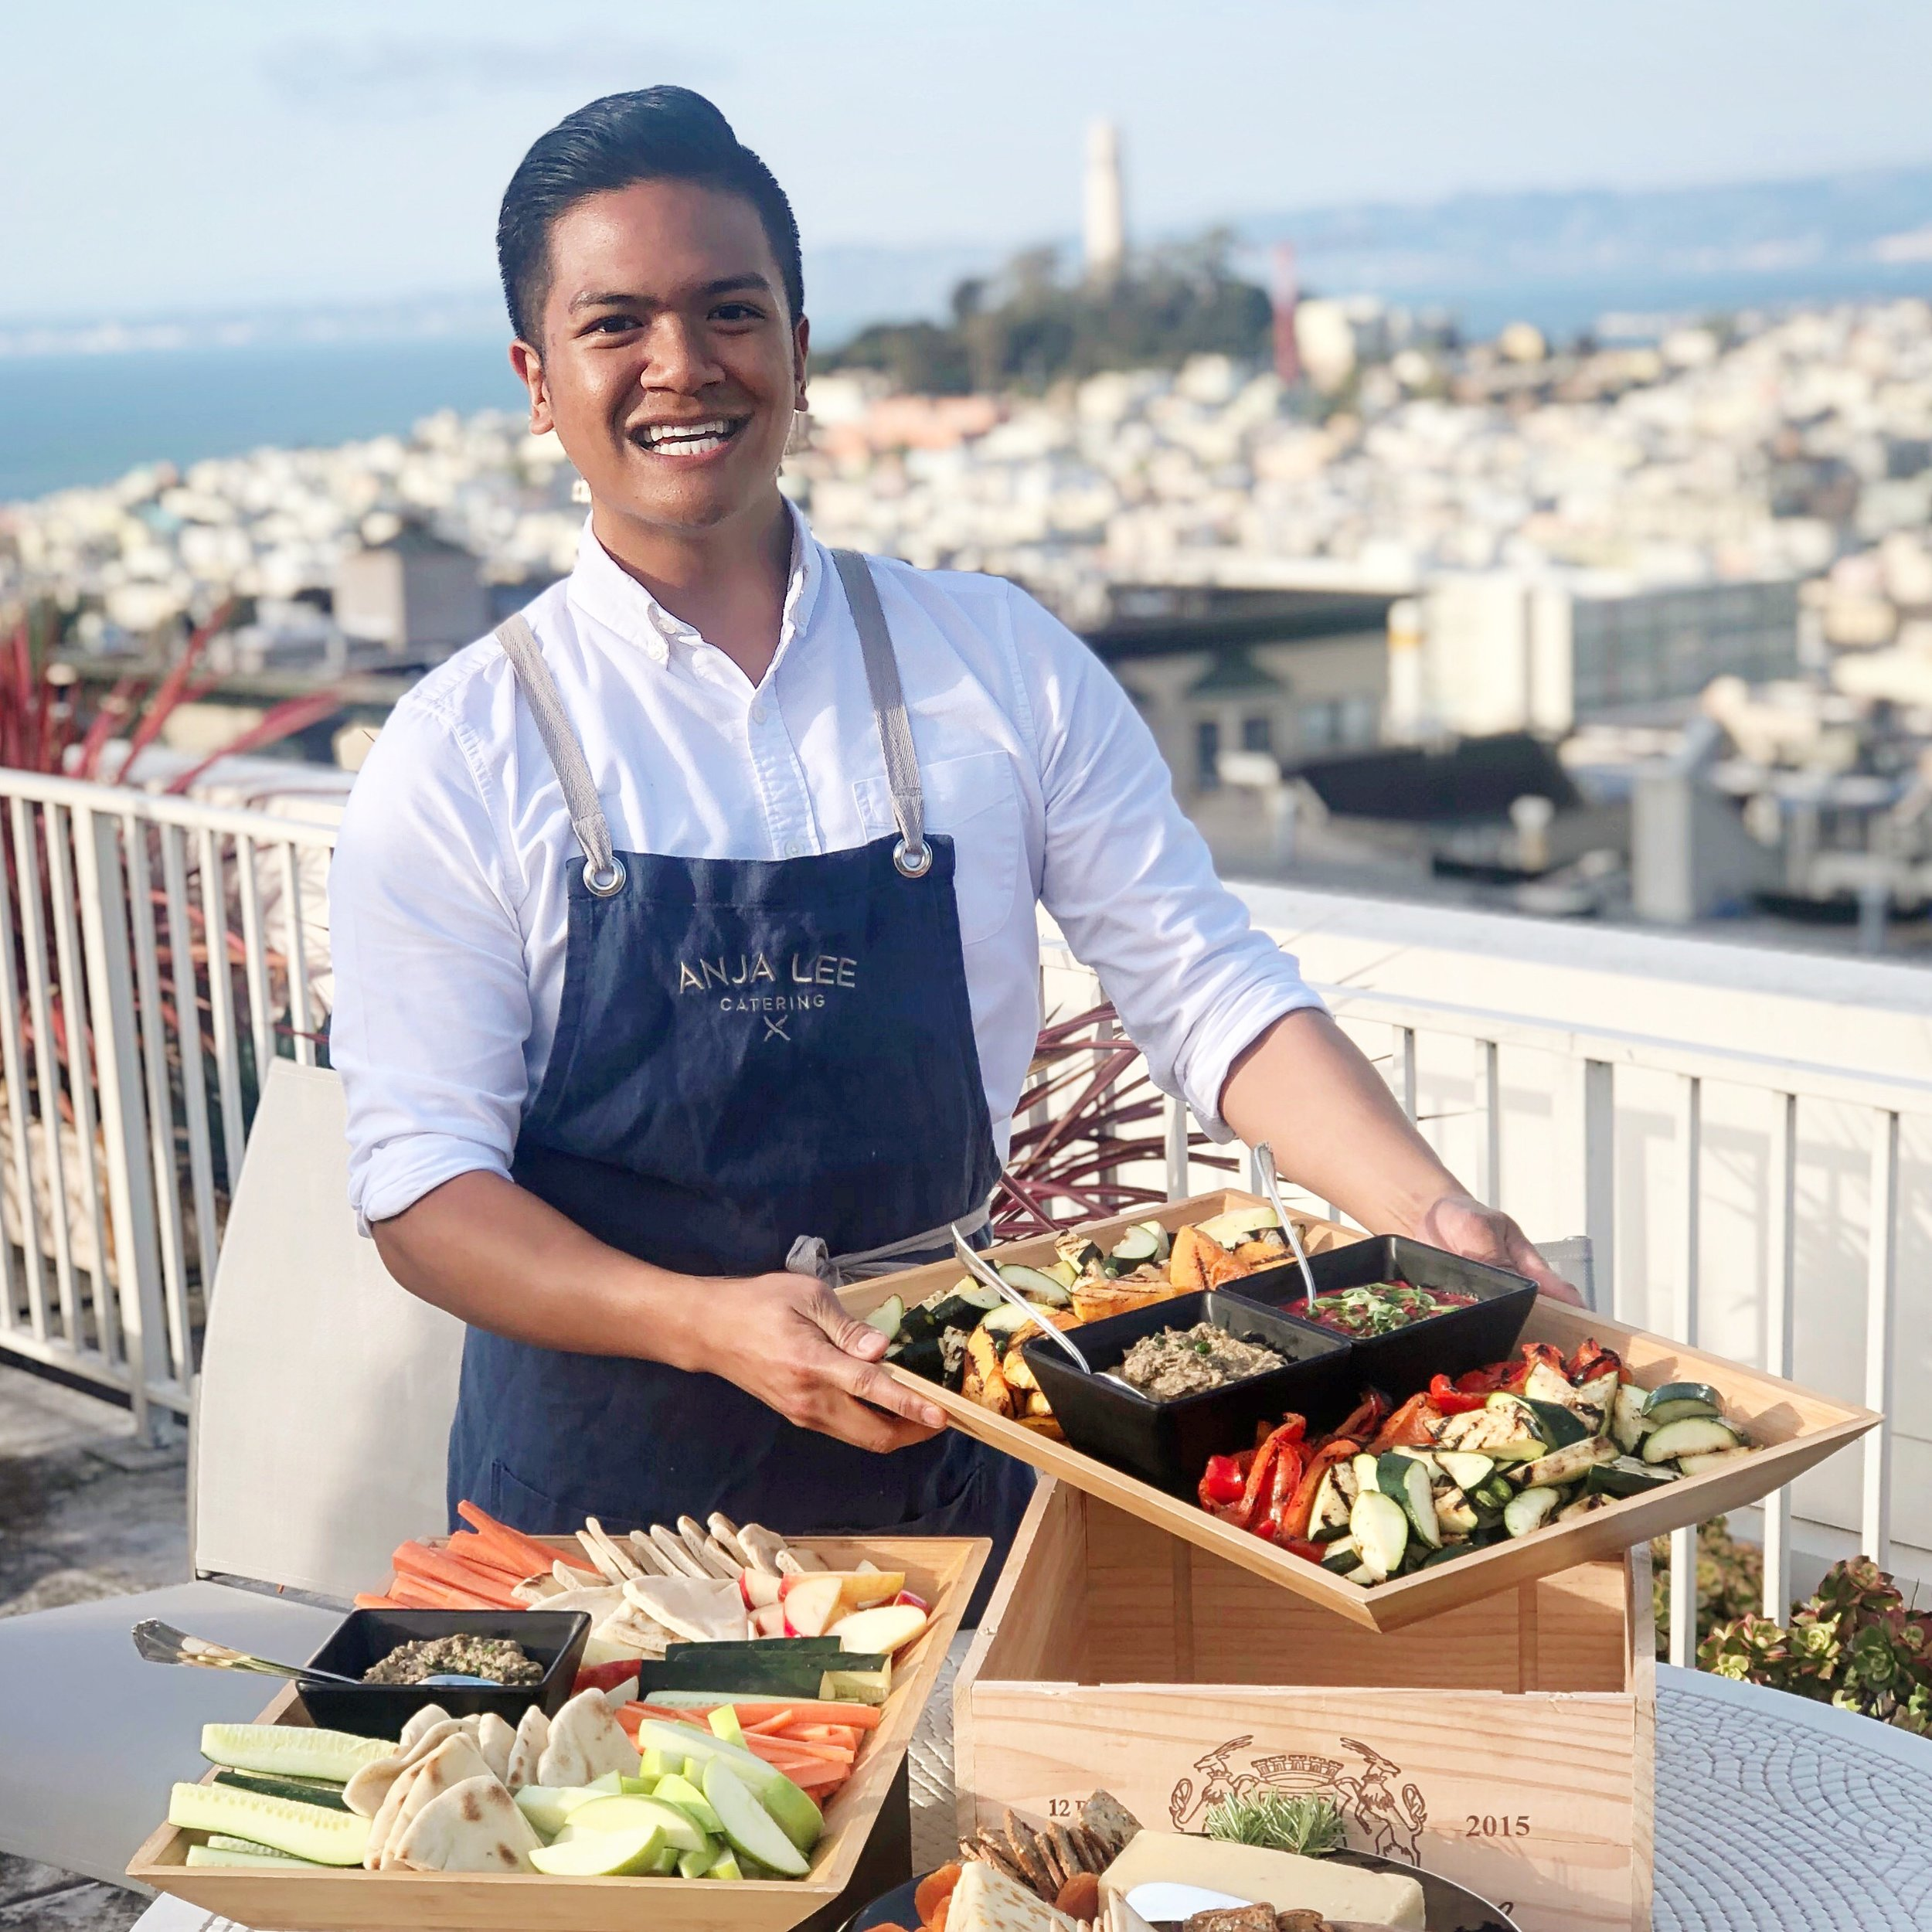 A natural host and chef, Josh's cooking and entertaining skills are things you won't know off of his resume. Joshua, UC Irvine alumni and Master's candidate for Public Administration at San Francisco State University, is a passionate chef in his spare time when not at his day job in City Planning. It's not easy work, but Josh is passionate about local government. When he's not at City Hall, Joshua puts in the same high-level energy and commitment into catering. Josh's catering and event planning has been rooted in him since his high school days in the suburbs of Sacramento. He's recognized for his knack in detailed planning when it comes to parties, decorating, and cooking. Throughout college, Josh made sure his friends were nourished with good food and not instant ramen. Now a resident of San Francisco, Joshua shares his love of party planning and food by growing his  #noshbyjosh  business as a catering consultant to the greater Bay Area. Joshua gravitates towards creating homemade Asian cuisine that is truly made with love. And he isn't afraid to coordinate an entire wedding if asked to do so. Bold flavors and beautiful presentations are his criterion. Joshua's main focus is to bring a smile to one's face and fostering that feeling of familiarity, while experiencing something original and new. Find Josh on Instragram @noshbyjosh for daily creations and inspirations!